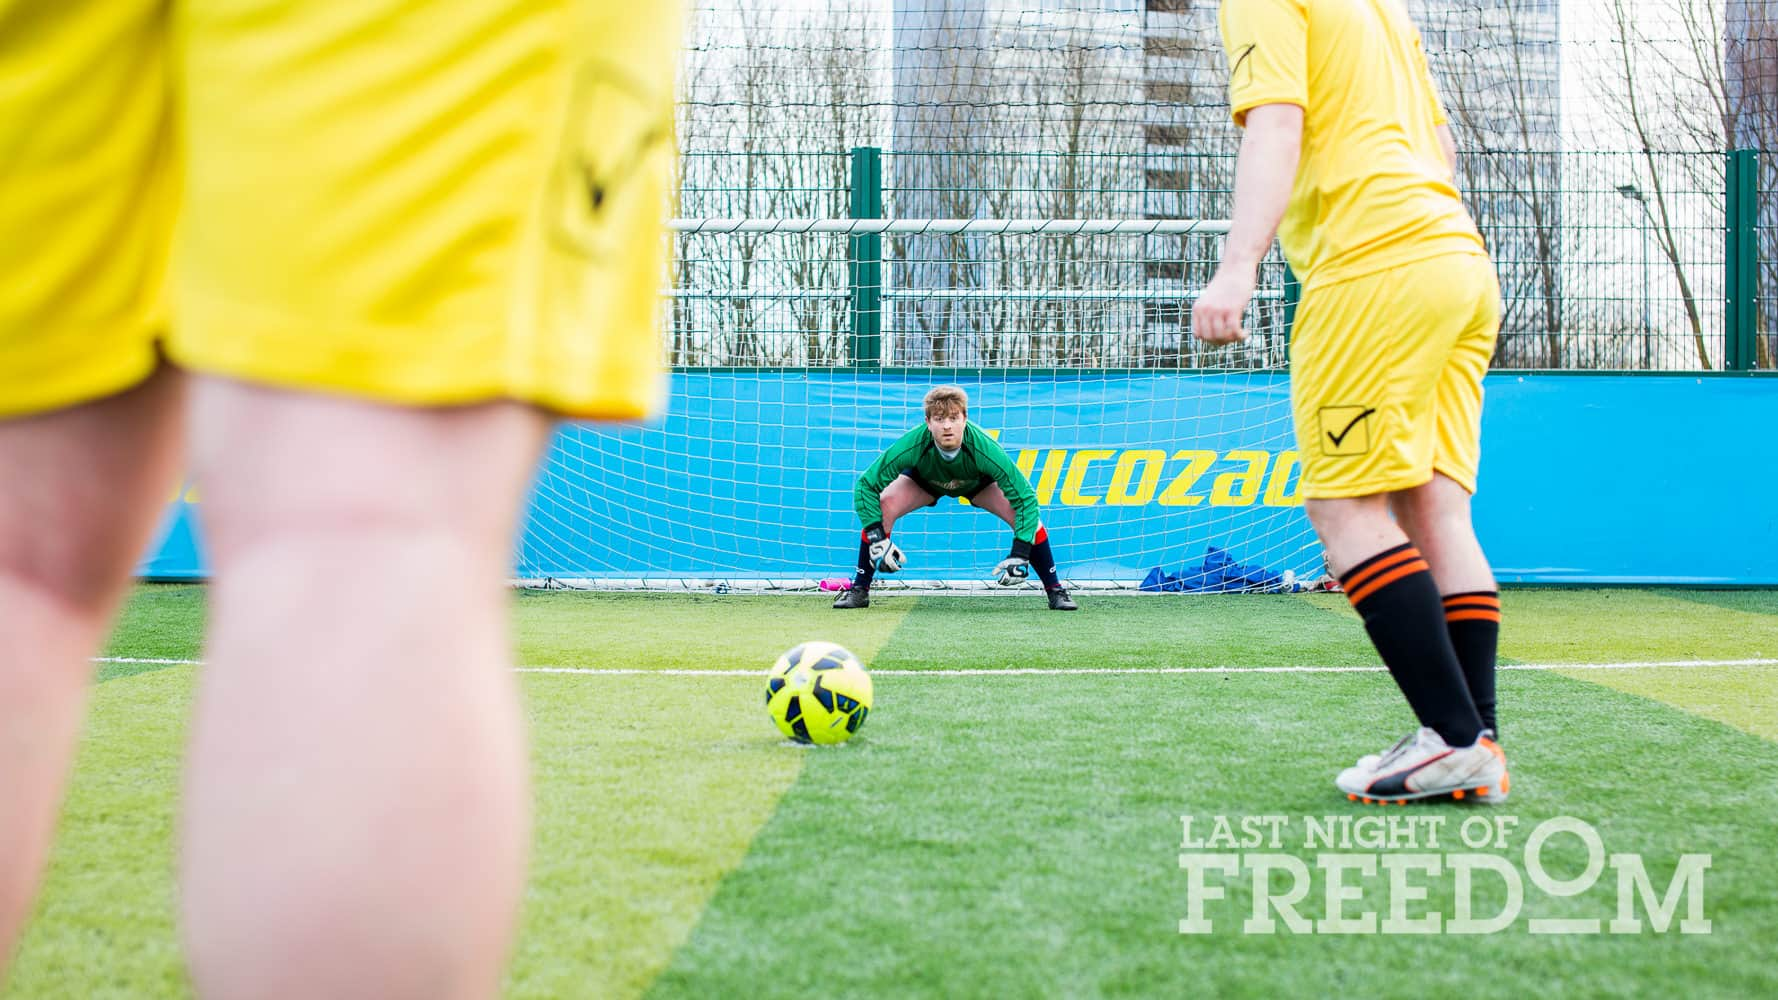 Sales Team Leader Adam preparing to save another penalty with the ball on the spot